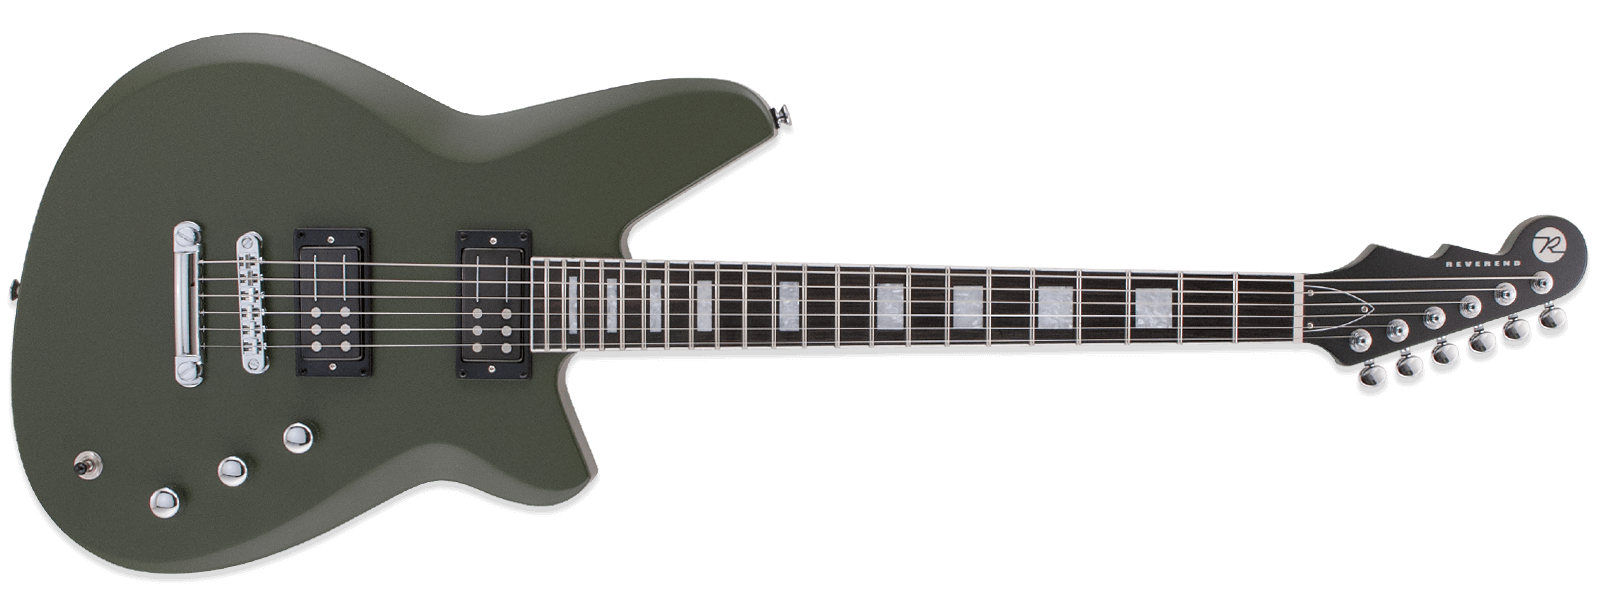 Reverend Shade Balderose SB-1 Army Green